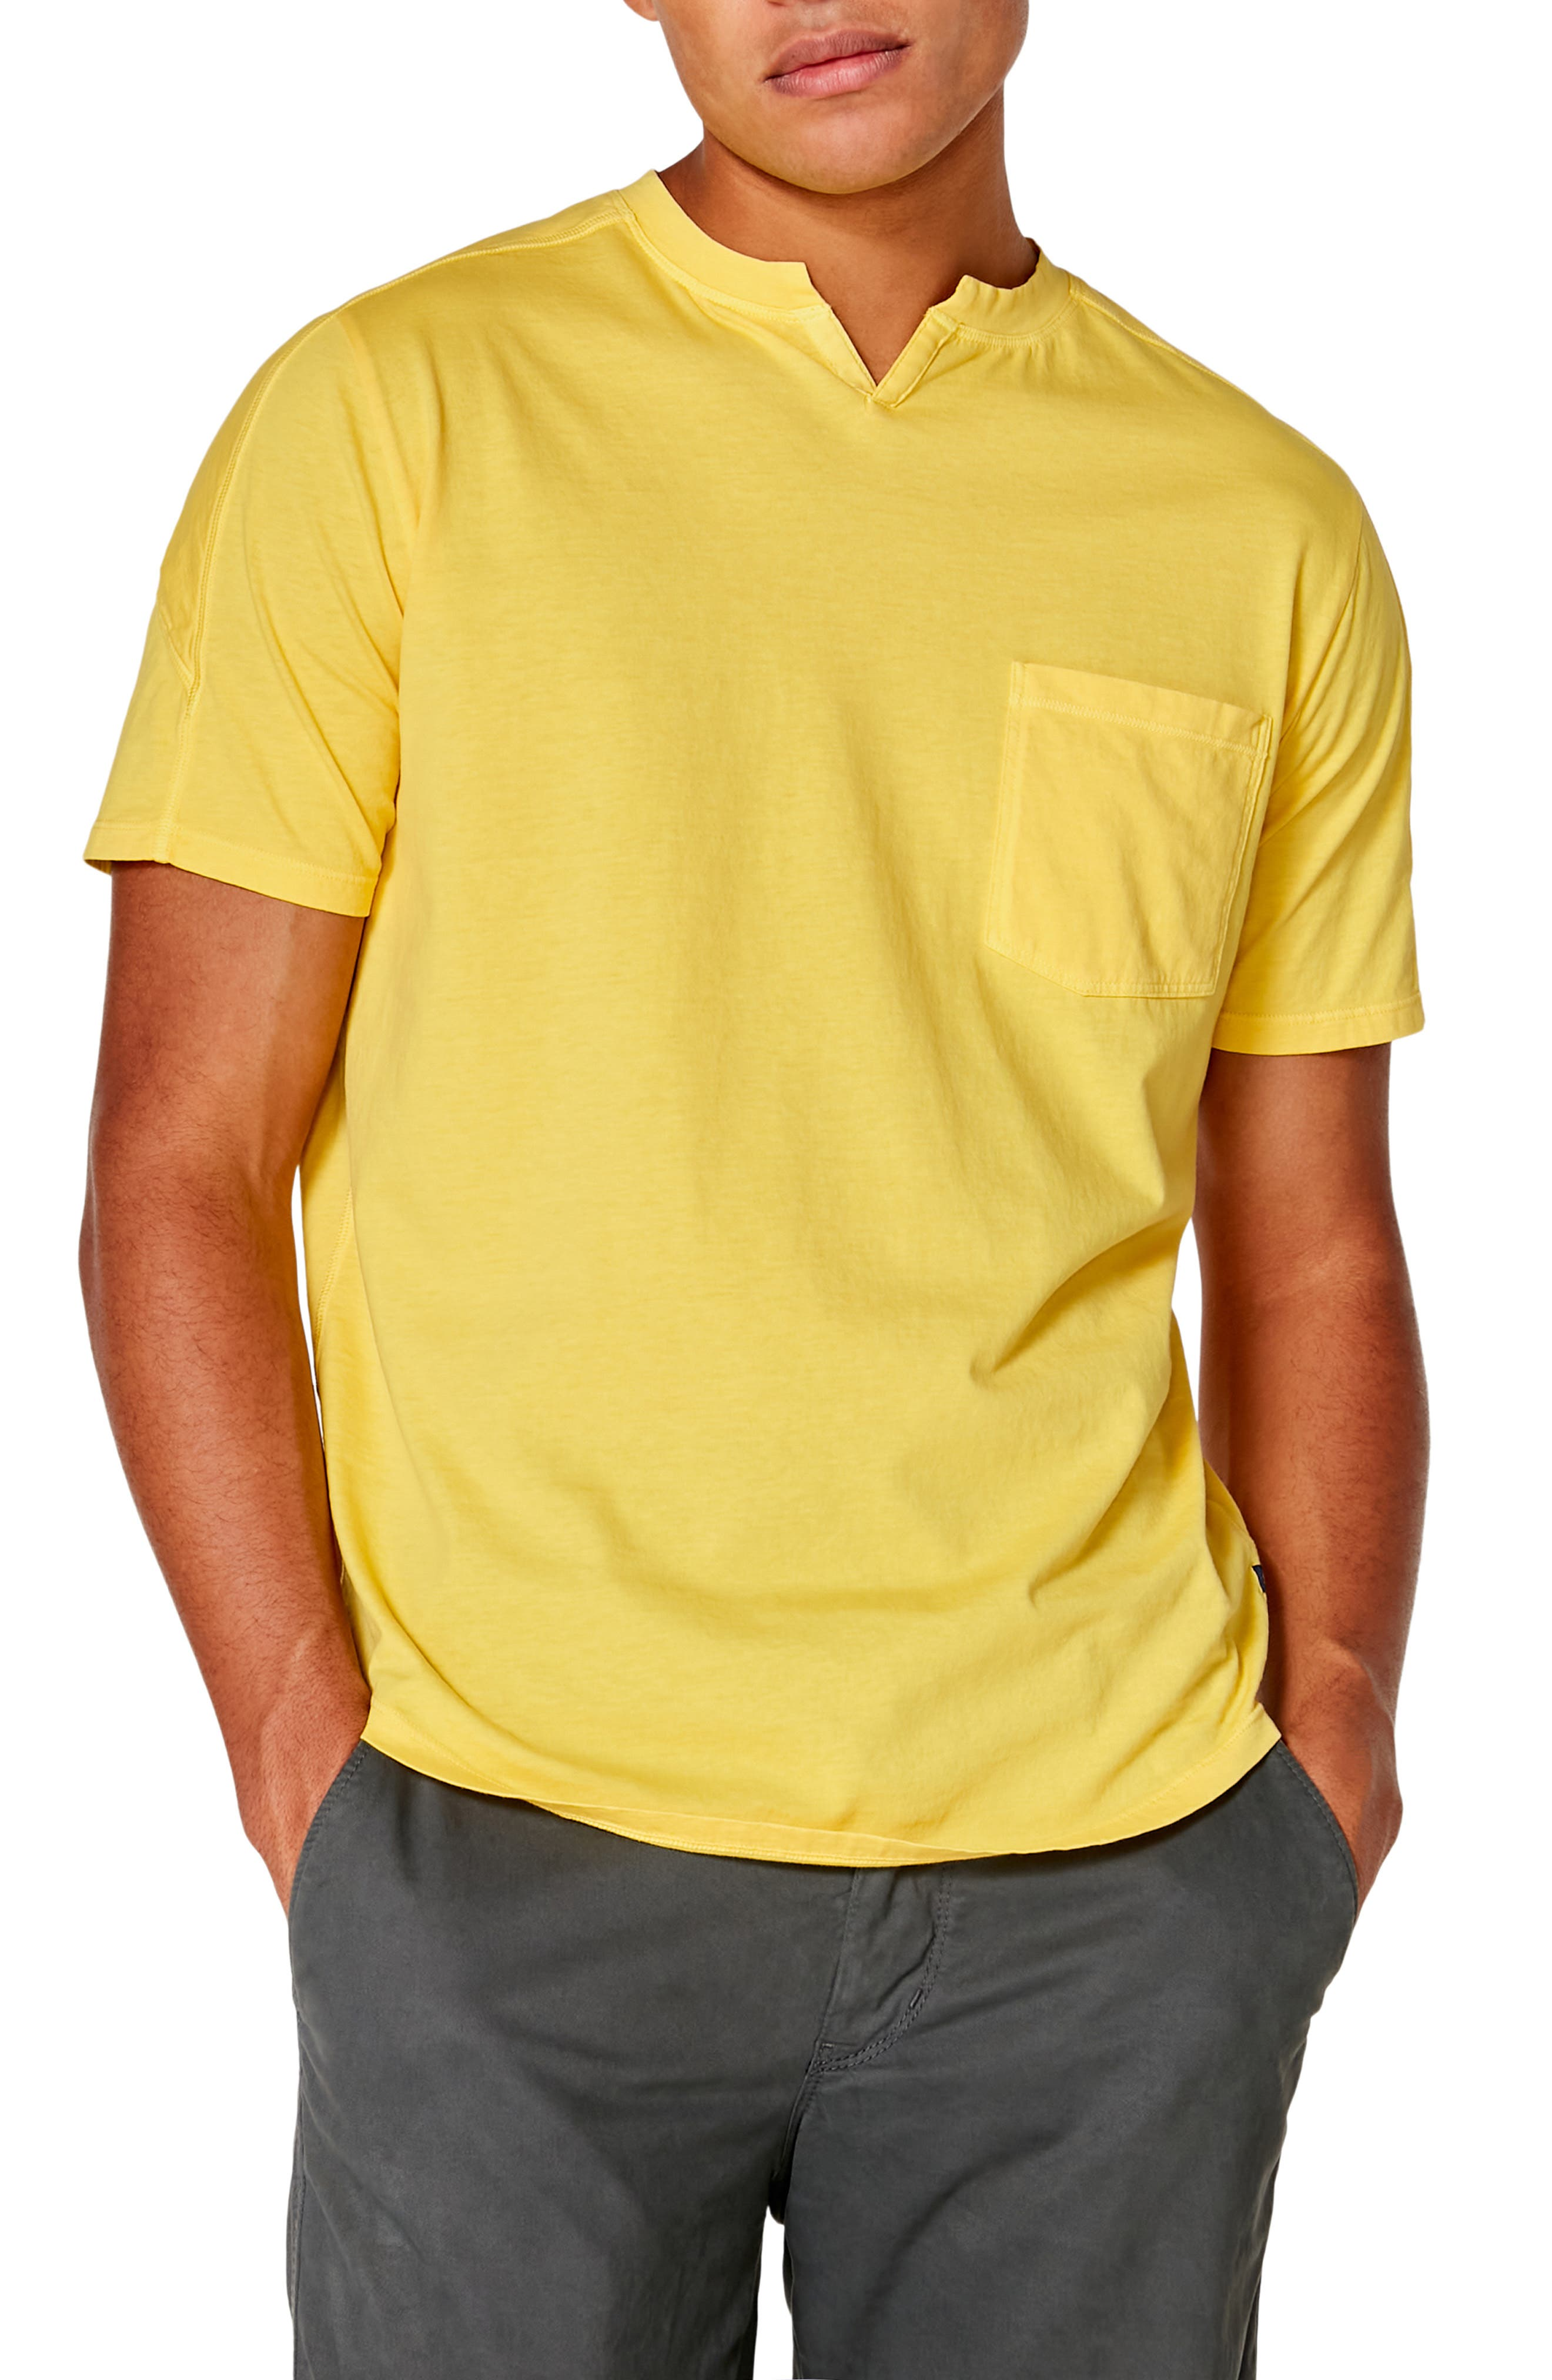 A notched collar updates a wardrobe-staple T-shirt cut from supersoft slub-cotton jersey. Style Name: Good Man Brand Premium Cotton T-Shirt. Style Number: 5534088 6. Available in stores.